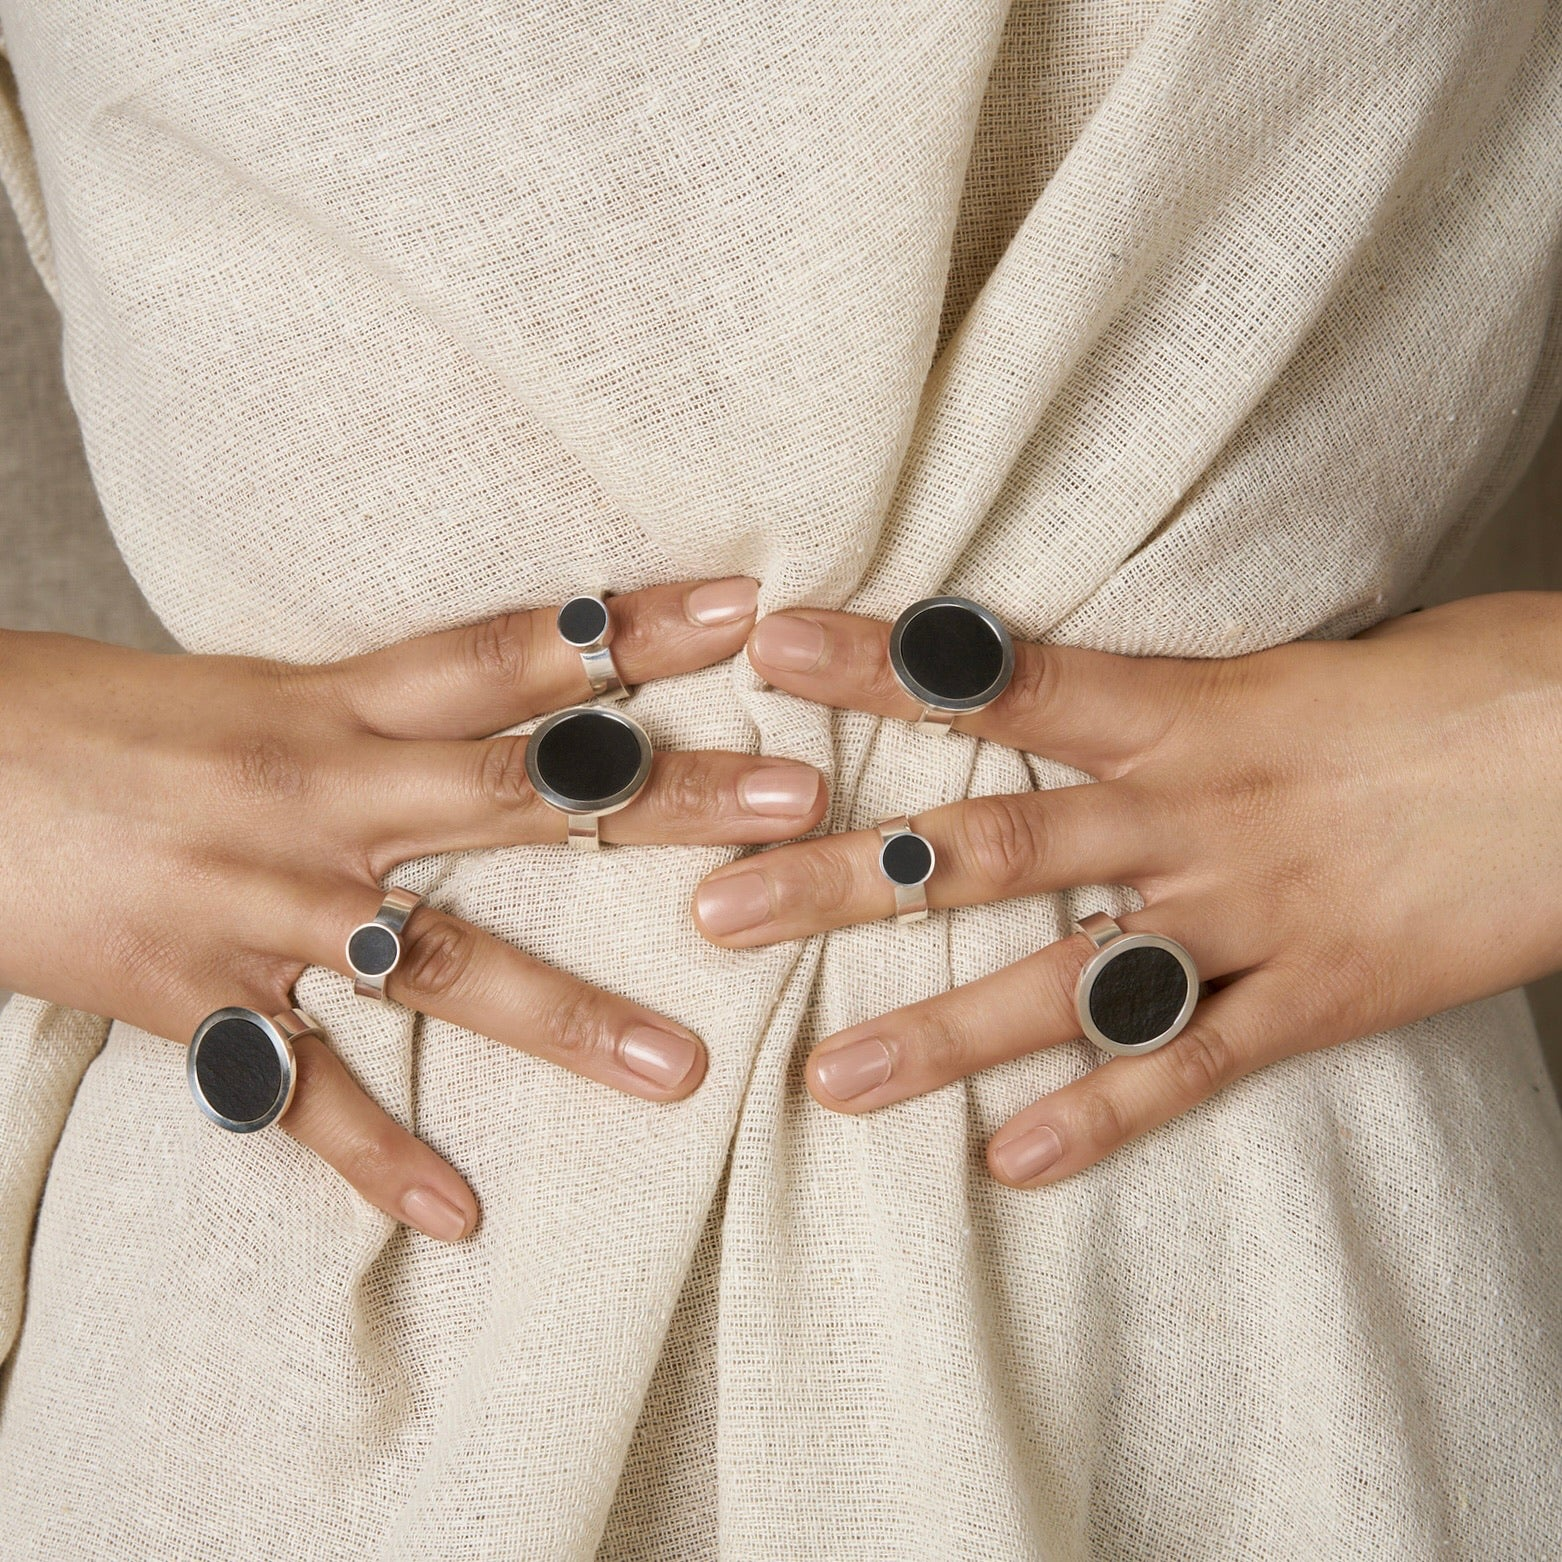 Turið Nolsøe Mohr | Turid Nolsoe Mohr | Black Basalt and Silver Chunky Rings | Stacked Rings Holding Waist Line Pose |  Faroe Islands